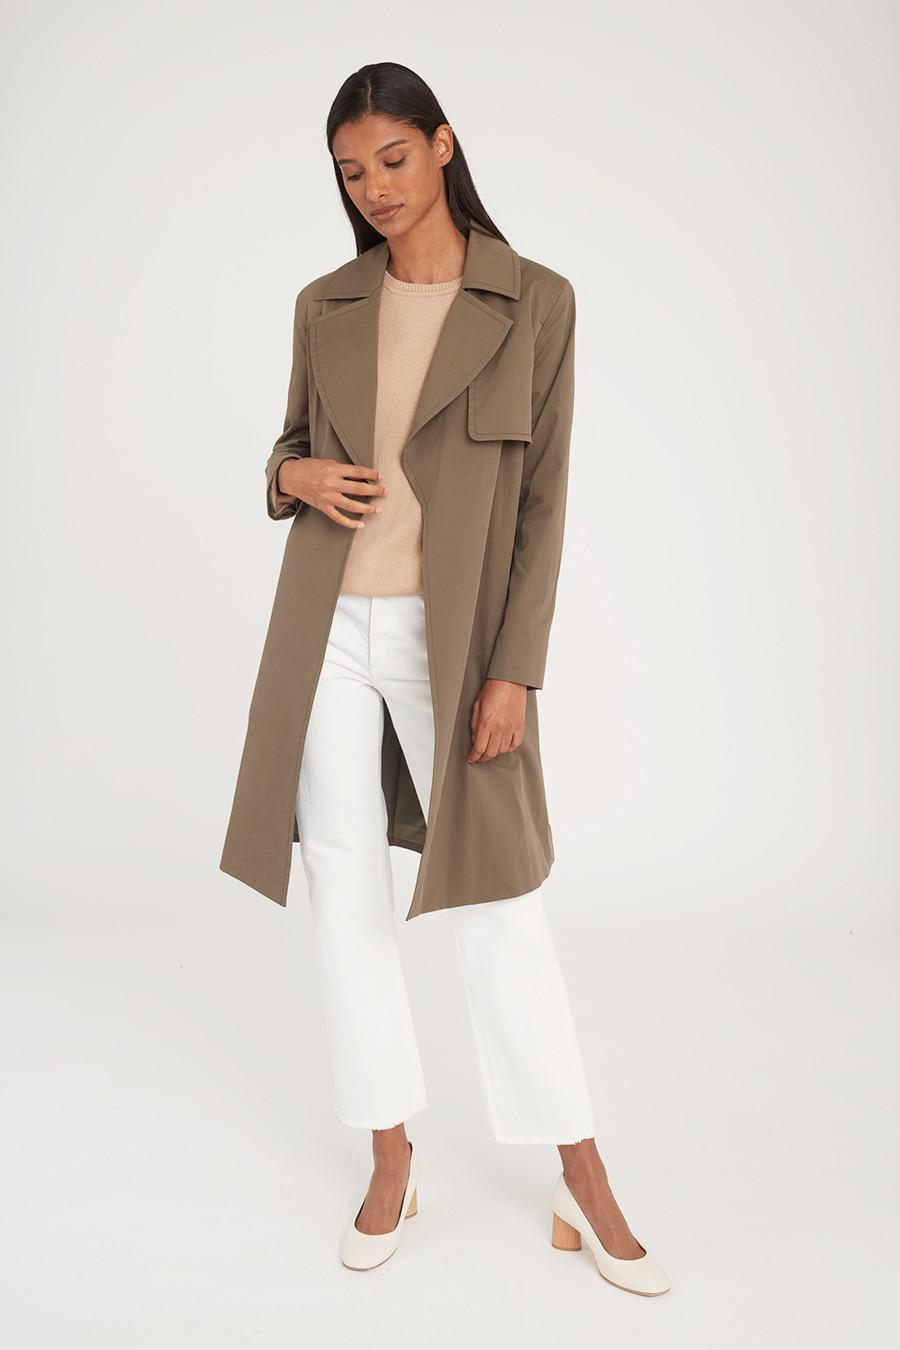 Women's Classic Trench in Olive | Size: 1